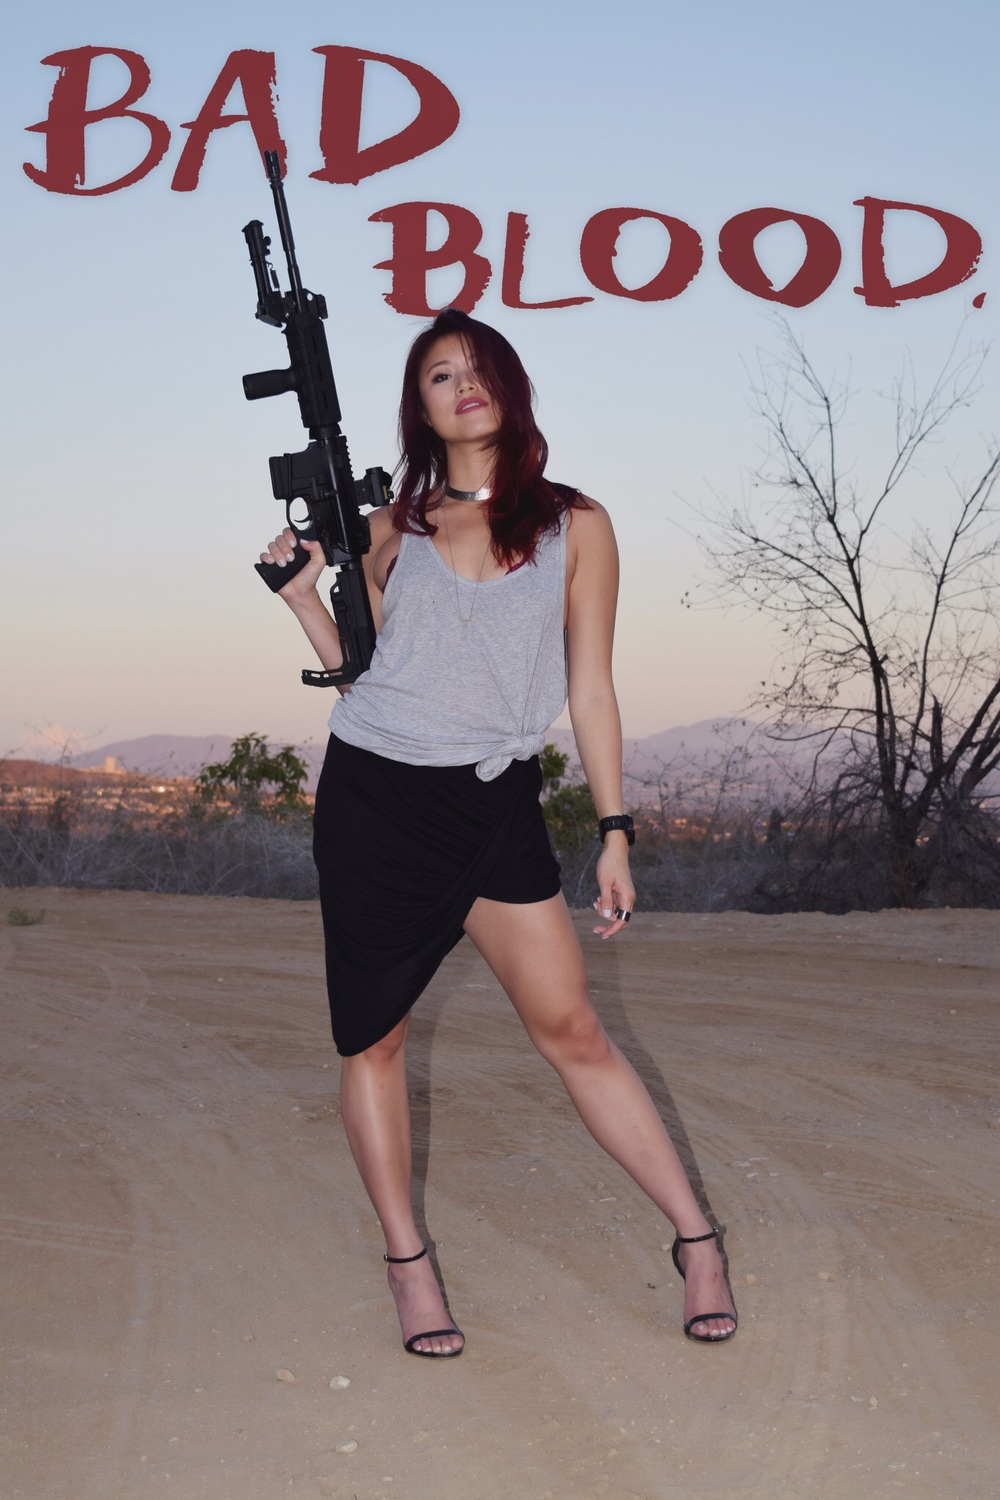 *All possible safety precautions were taken with the depicted weapons in this shoot under close supervision.*